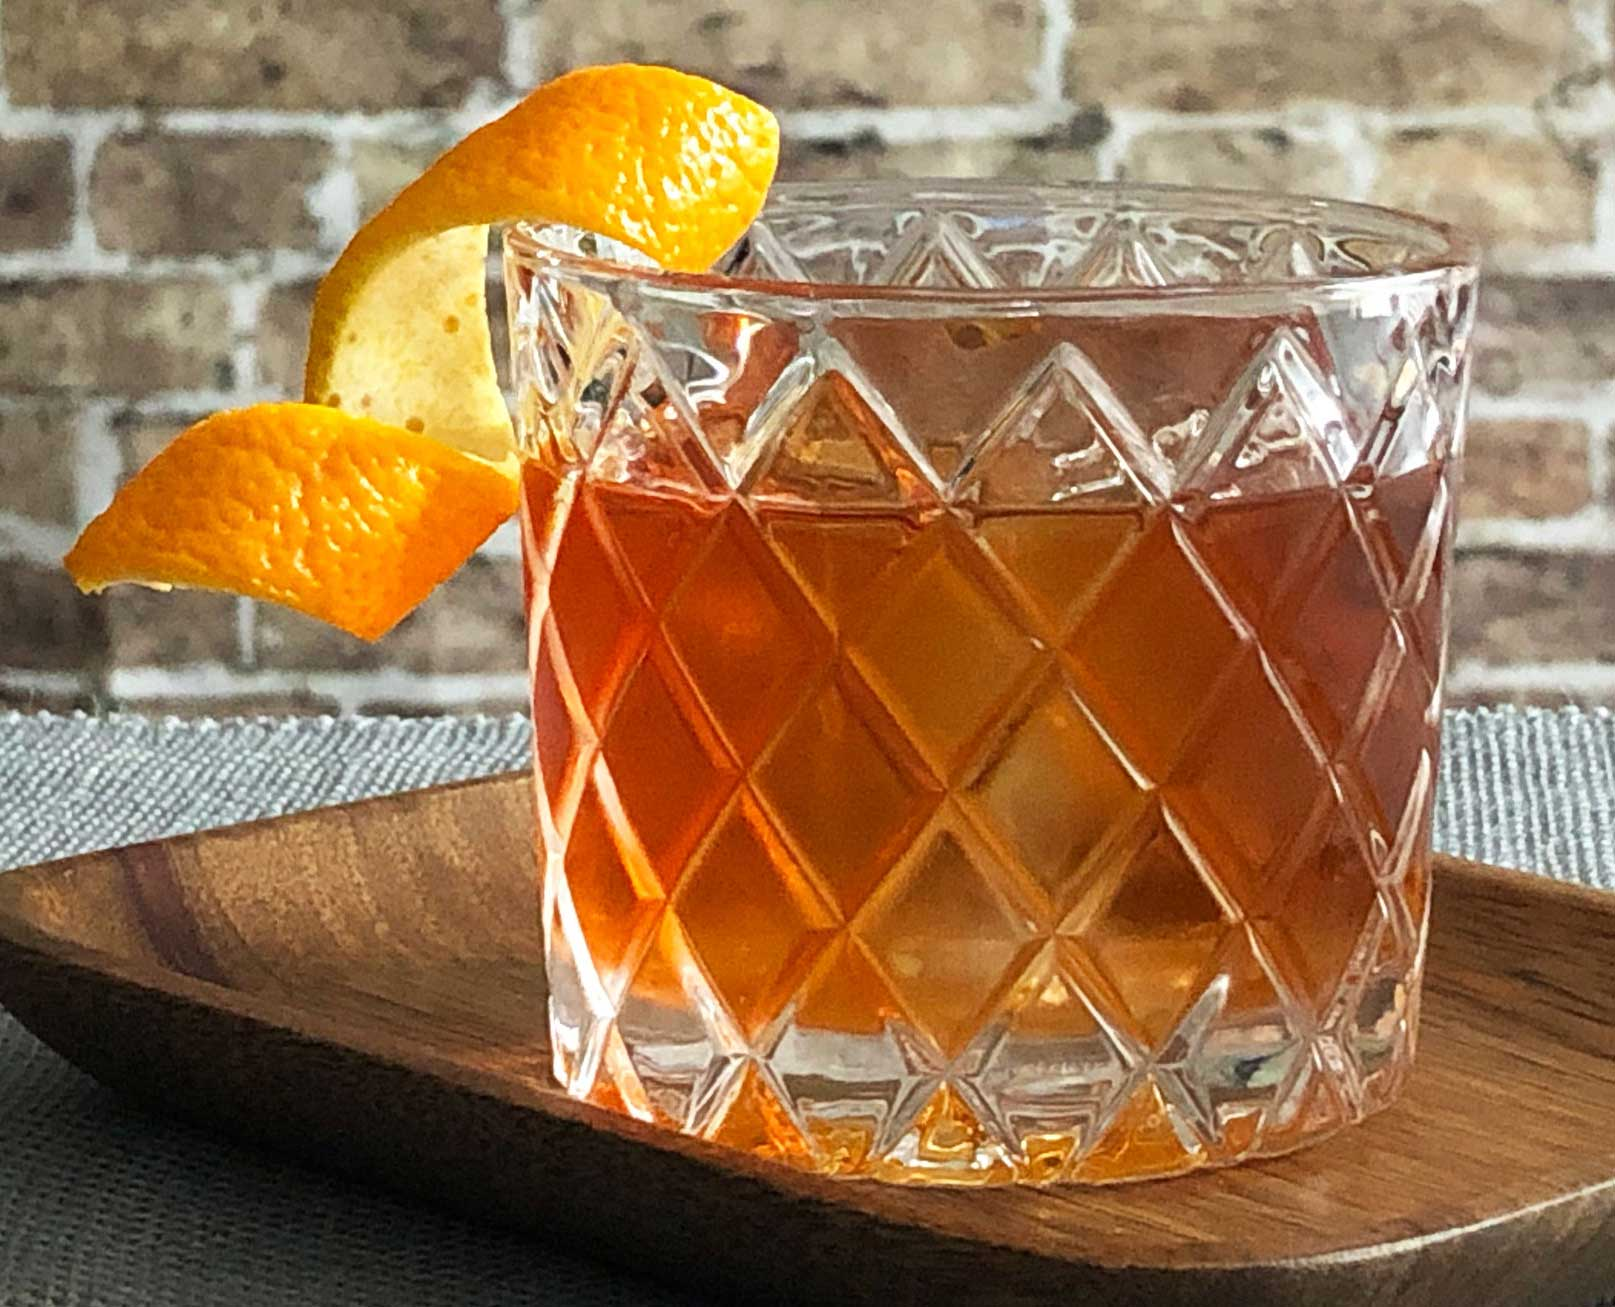 An example of the Rum Old Fashioned, the mixed drink (cocktail) featuring The Scarlet Ibis Trinidad Rum, Smith & Cross Traditional Jamaica Rum, rich demerara syrup, and Angostura bitters; photo by Lee Edwards